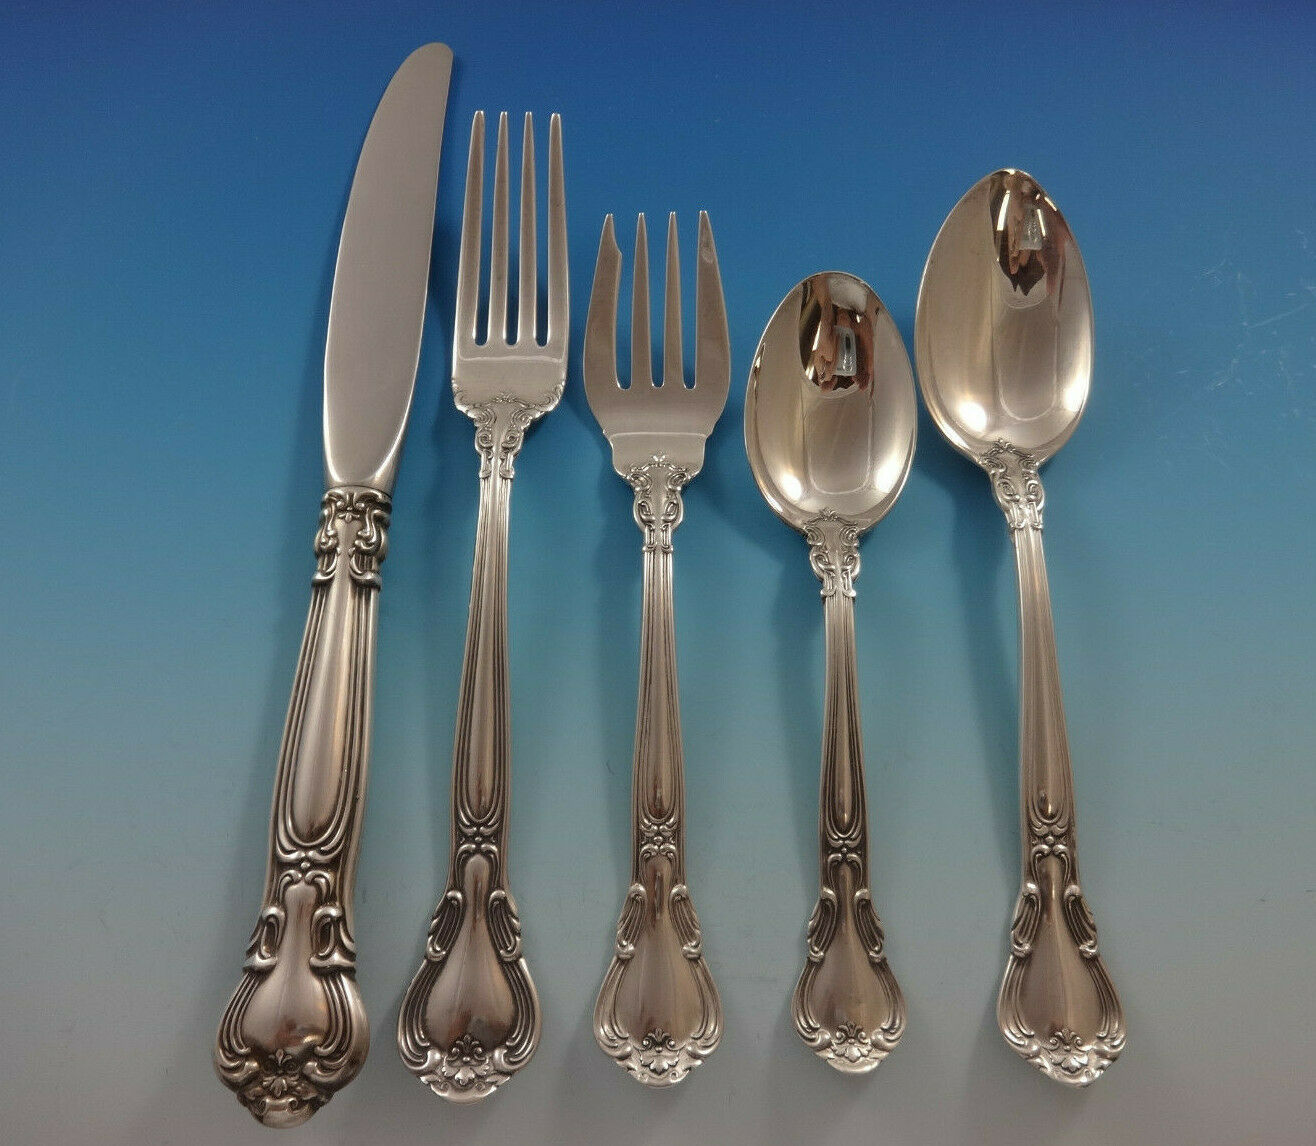 Chantilly by Gorham Sterling Silver Place Size Flatware Set 8 Service 42 Pcs image 3